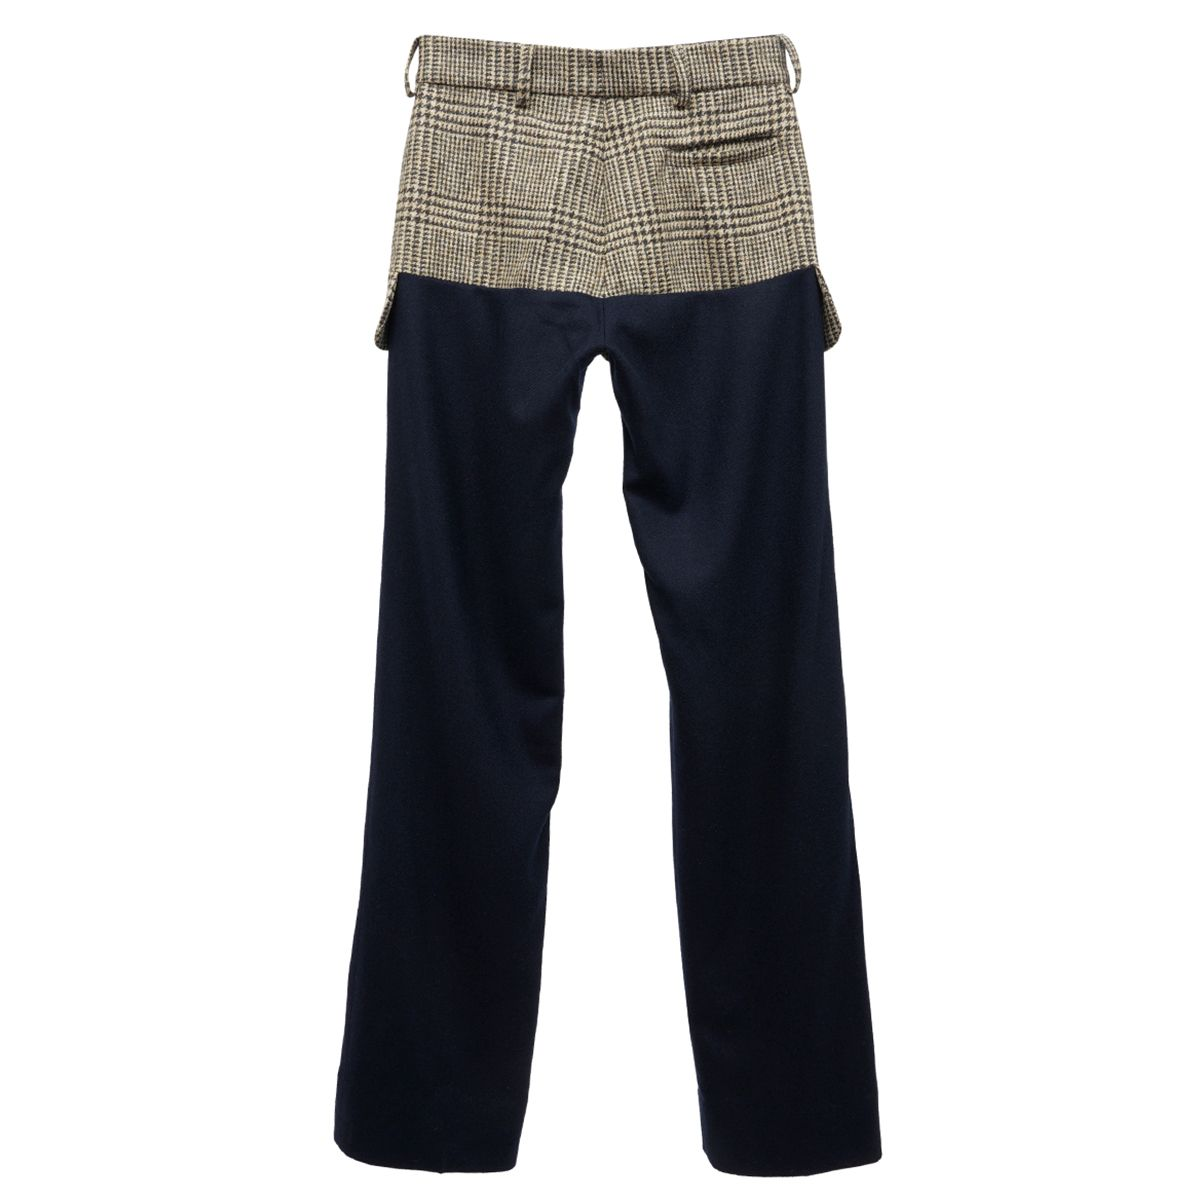 Stefan Cooke TAILORED TROUSERS / BROWN-NAVY